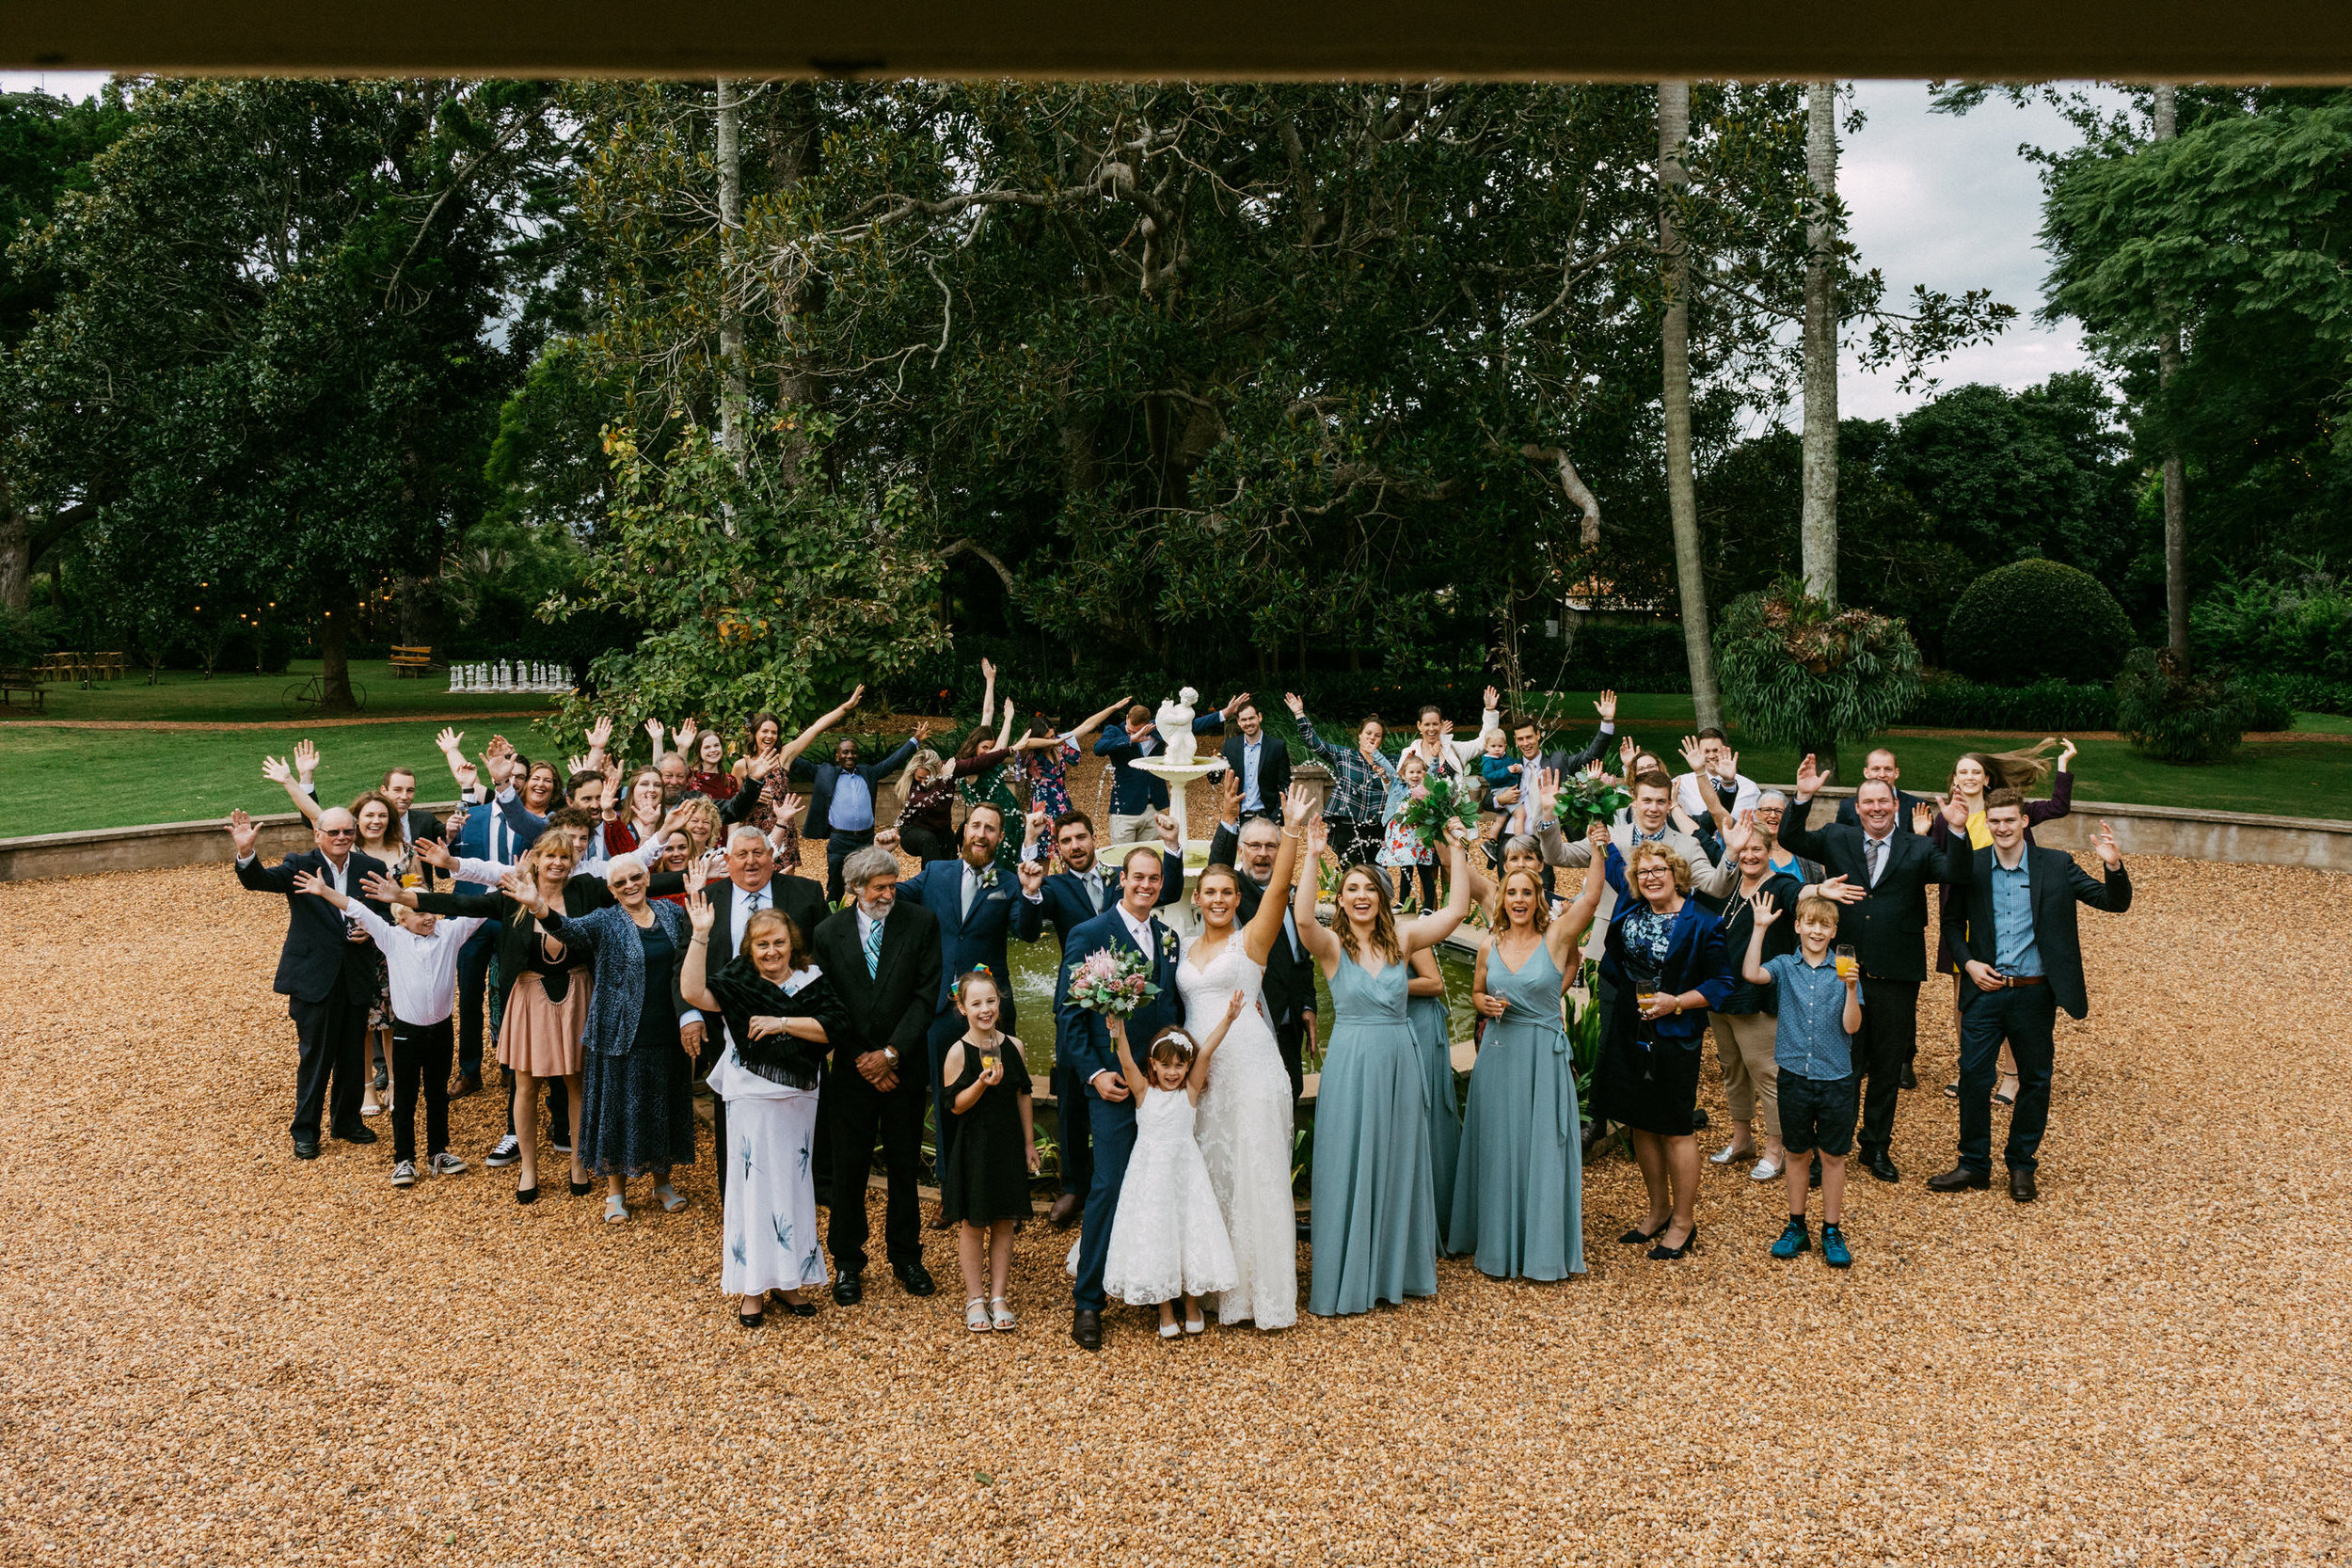 Toowoomba QLD Wedding 119.jpg